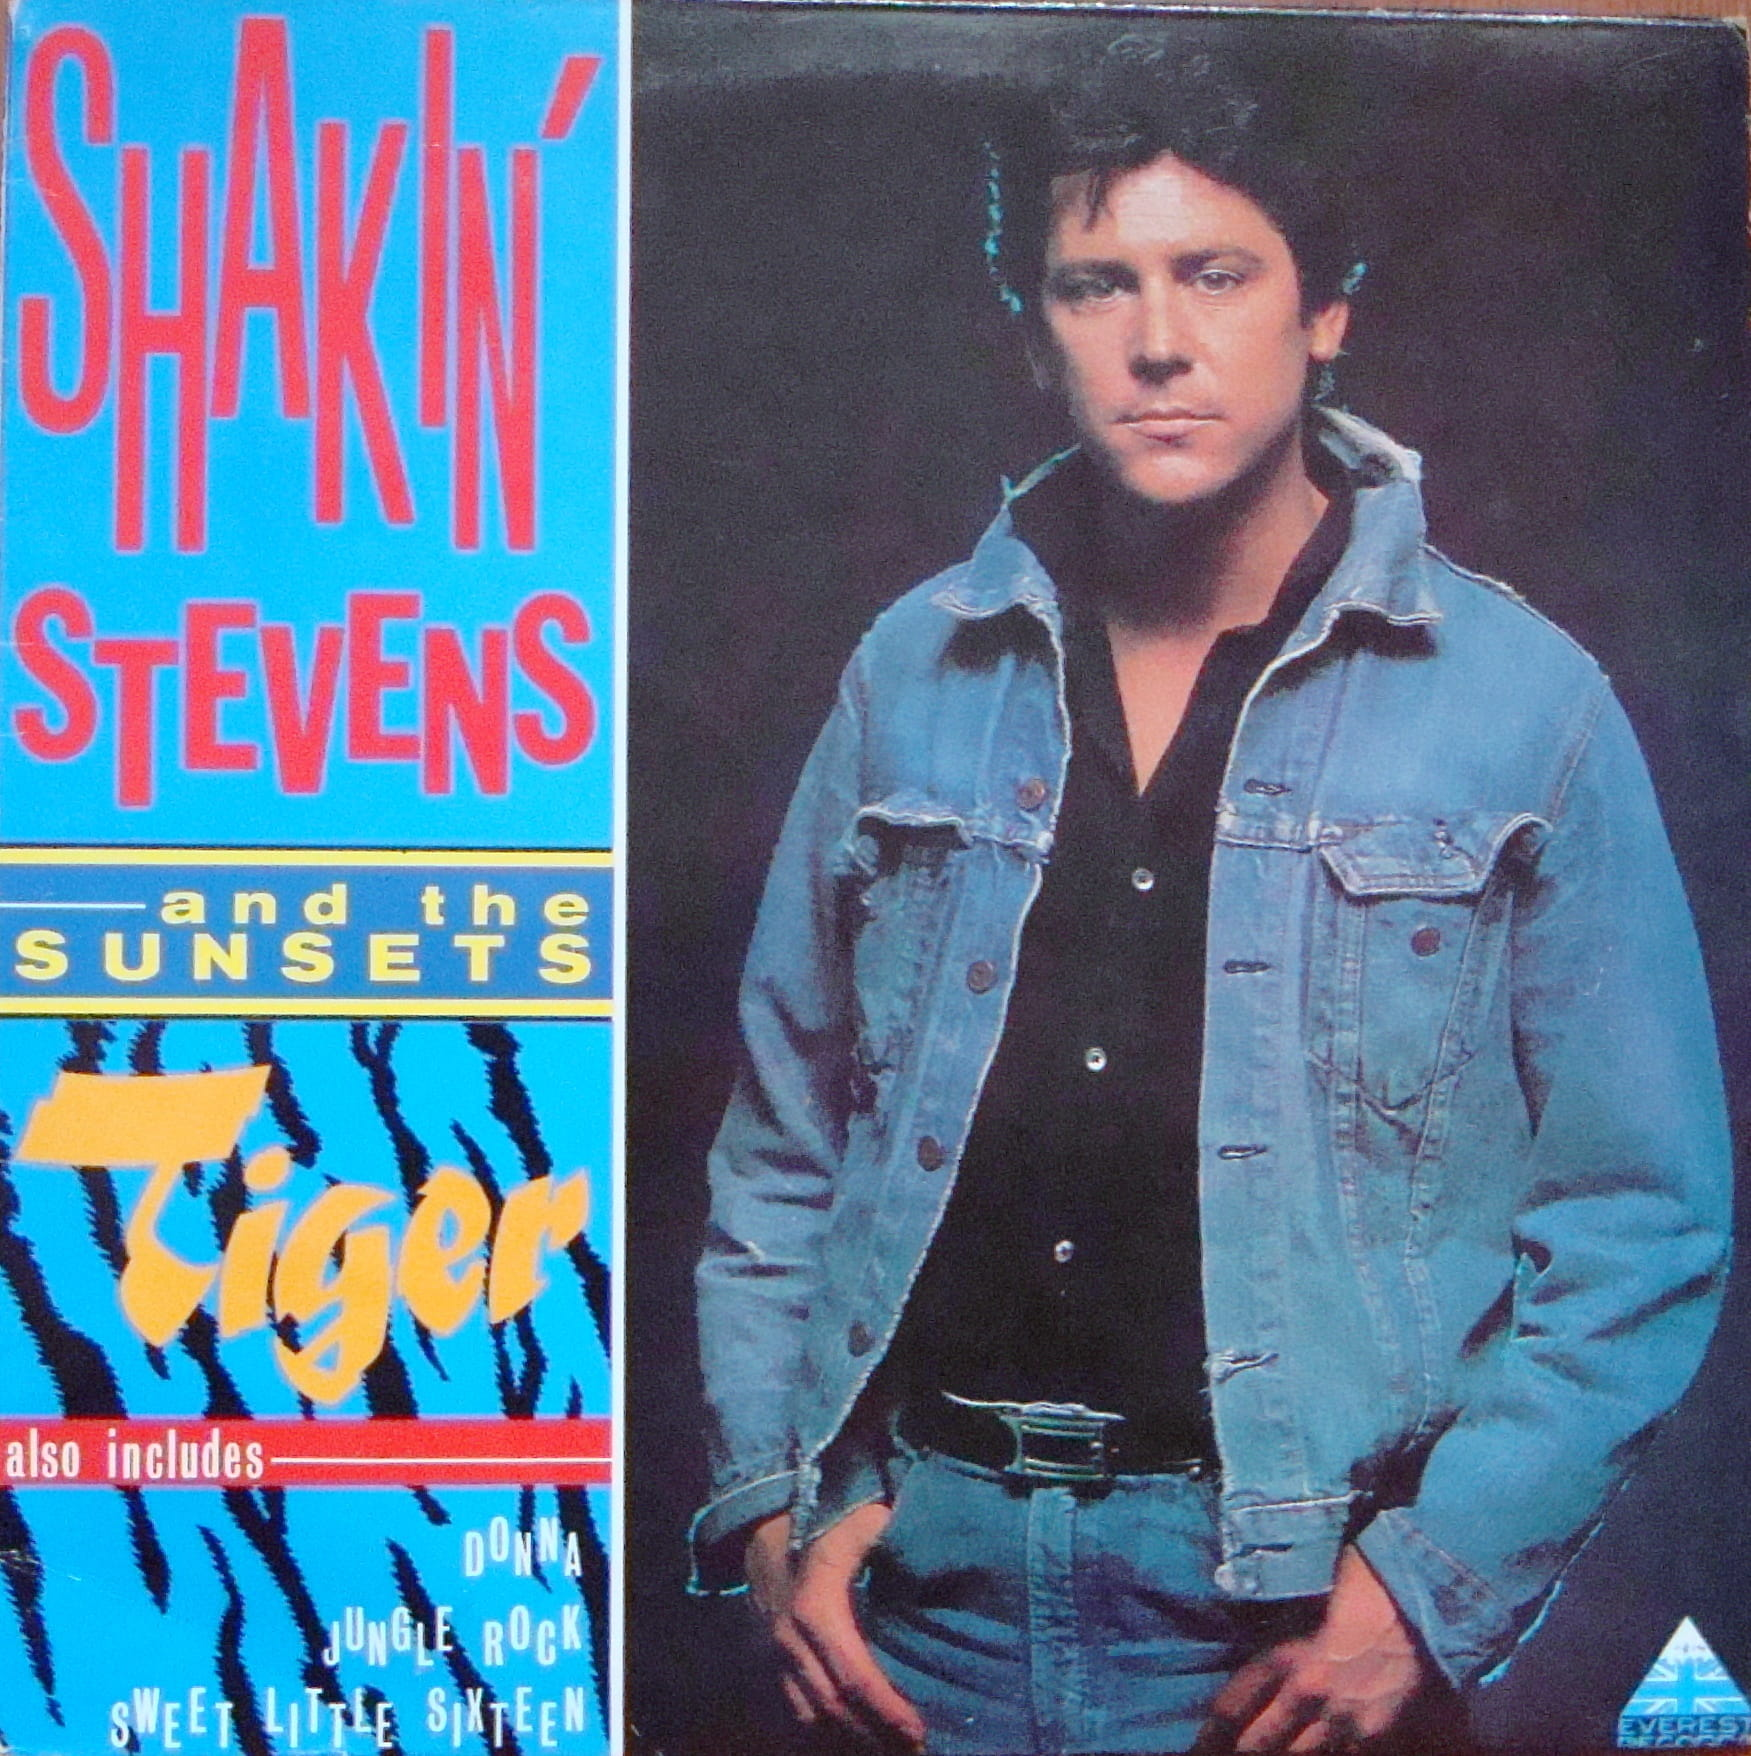 Shakin' Stevens - The Best